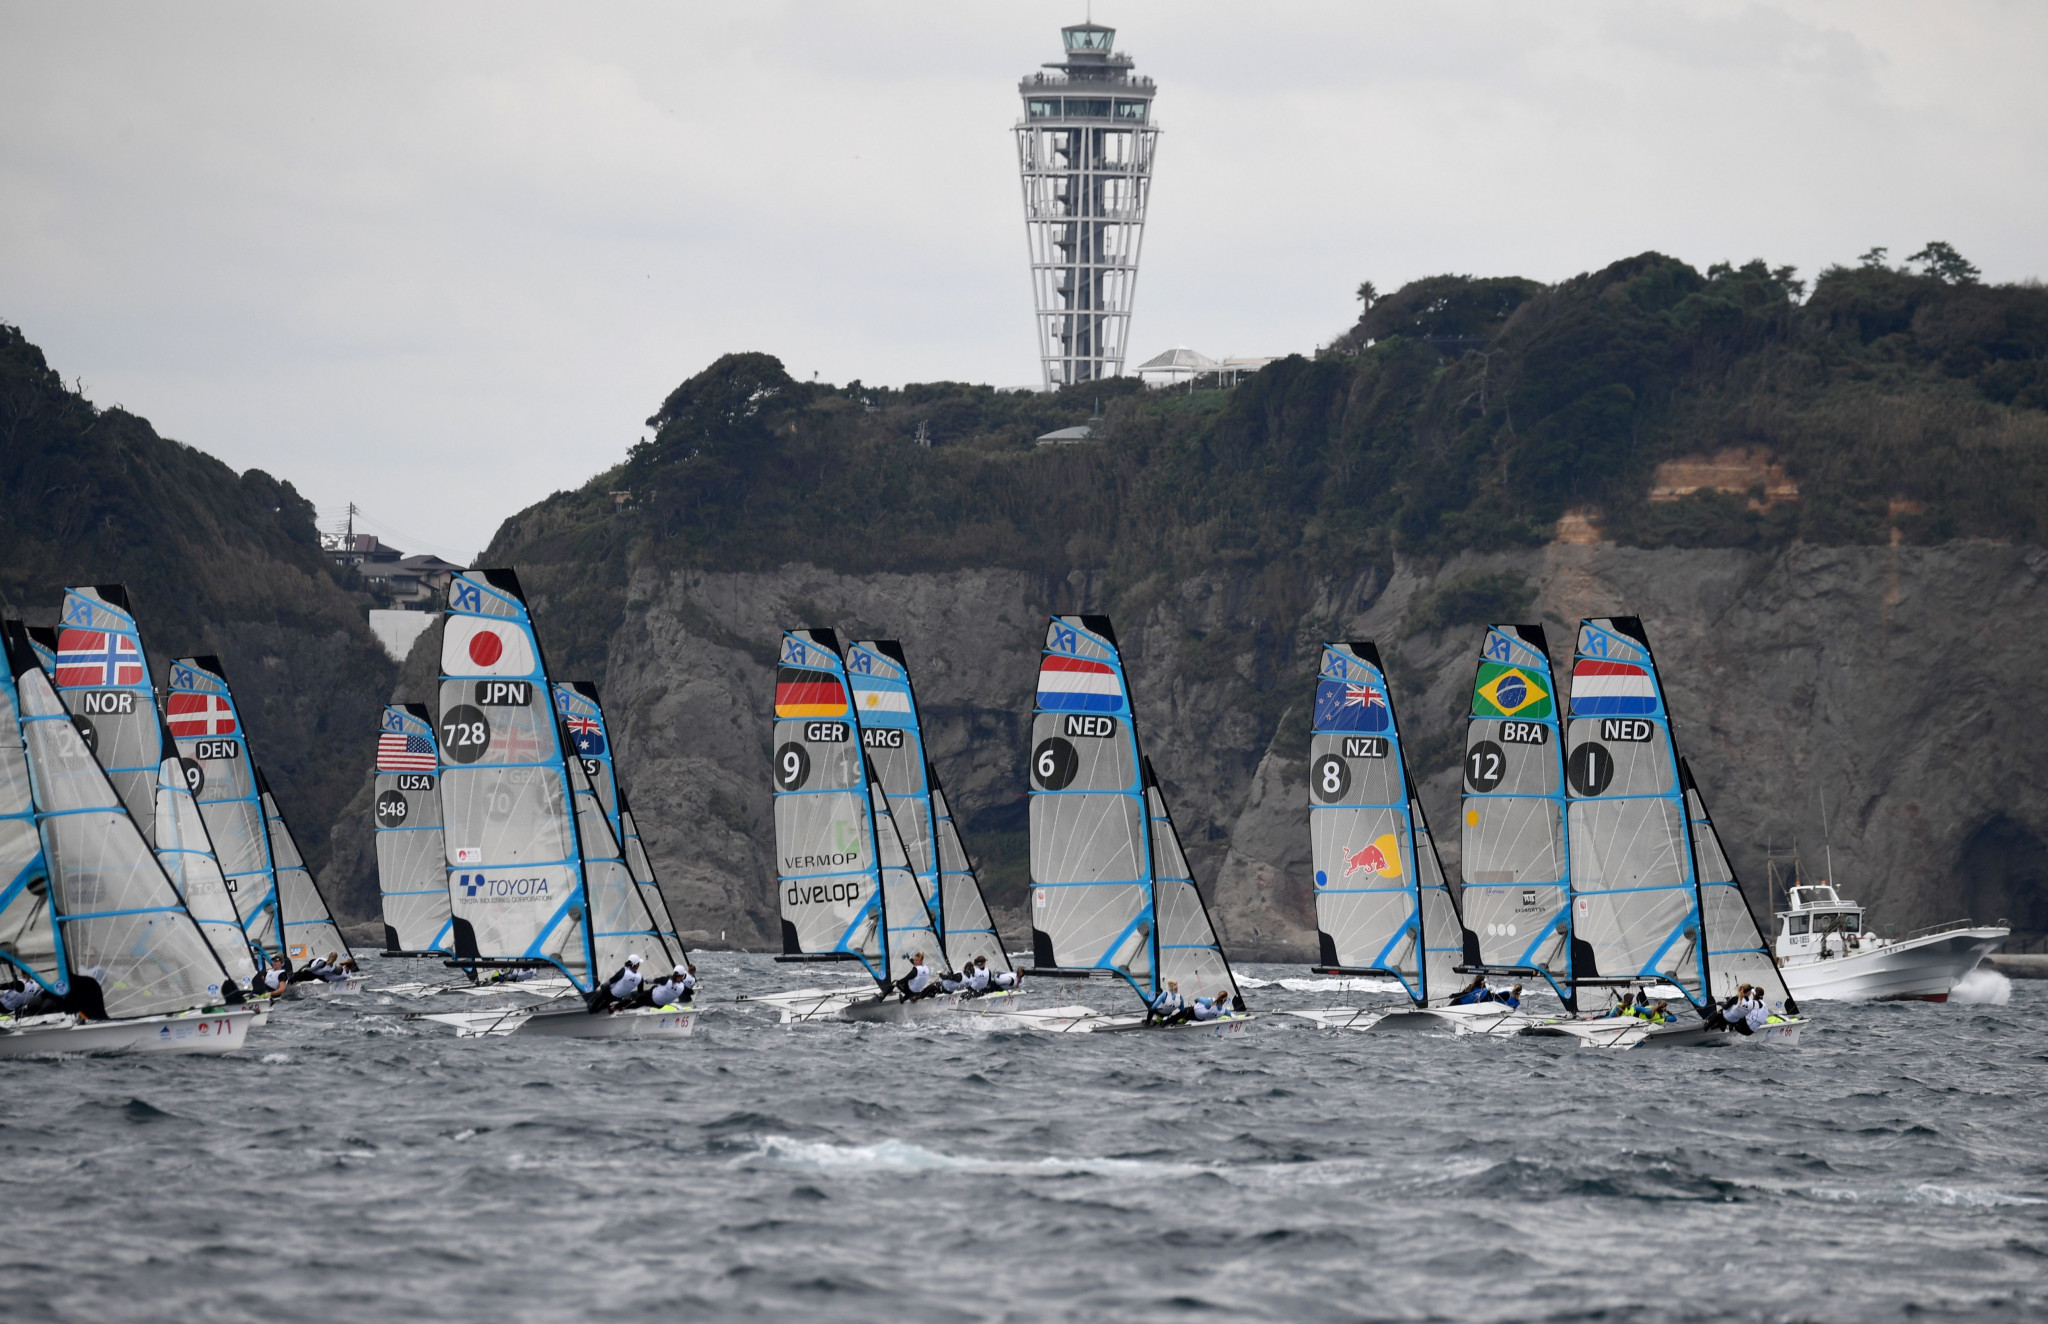 Tokyo 2020 insists procedures in place after professor raises concerns over evacuation planning at sailing venue